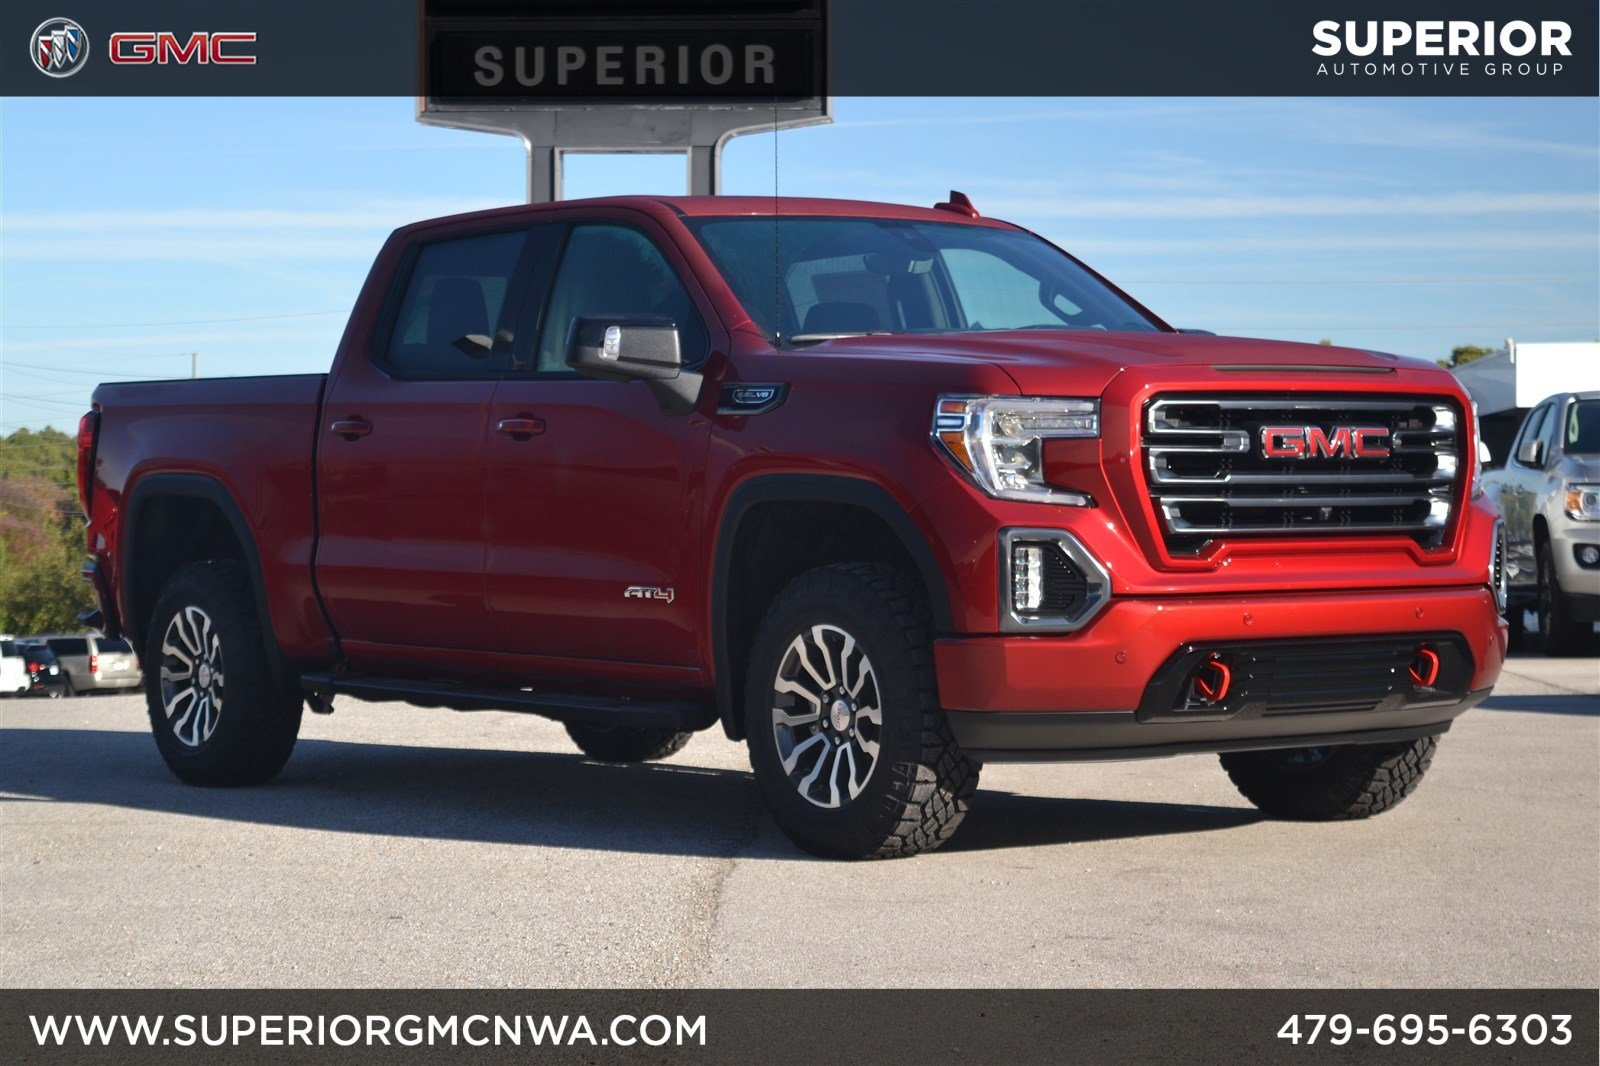 New 2019 Gmc Sierra 1500 At4 Crew Cab Pickup In Fayetteville Dual Battery Kit